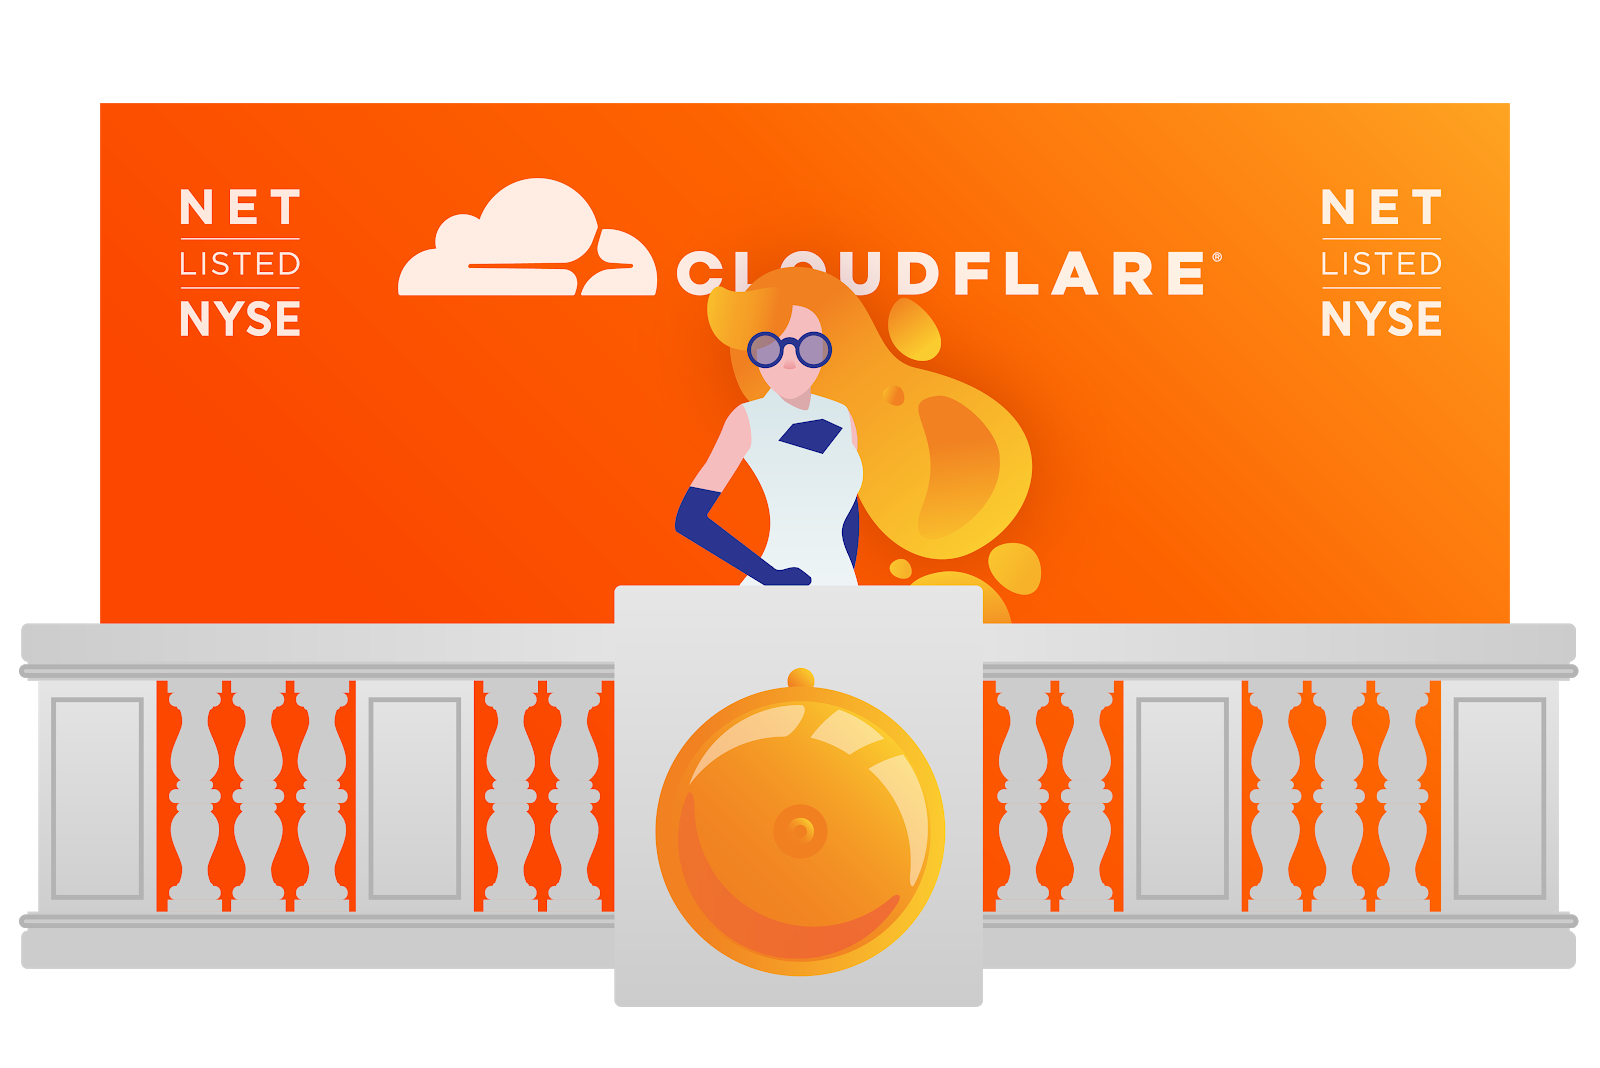 How Cloudflare and Wall Street Are Helping Encrypt the Internet Today